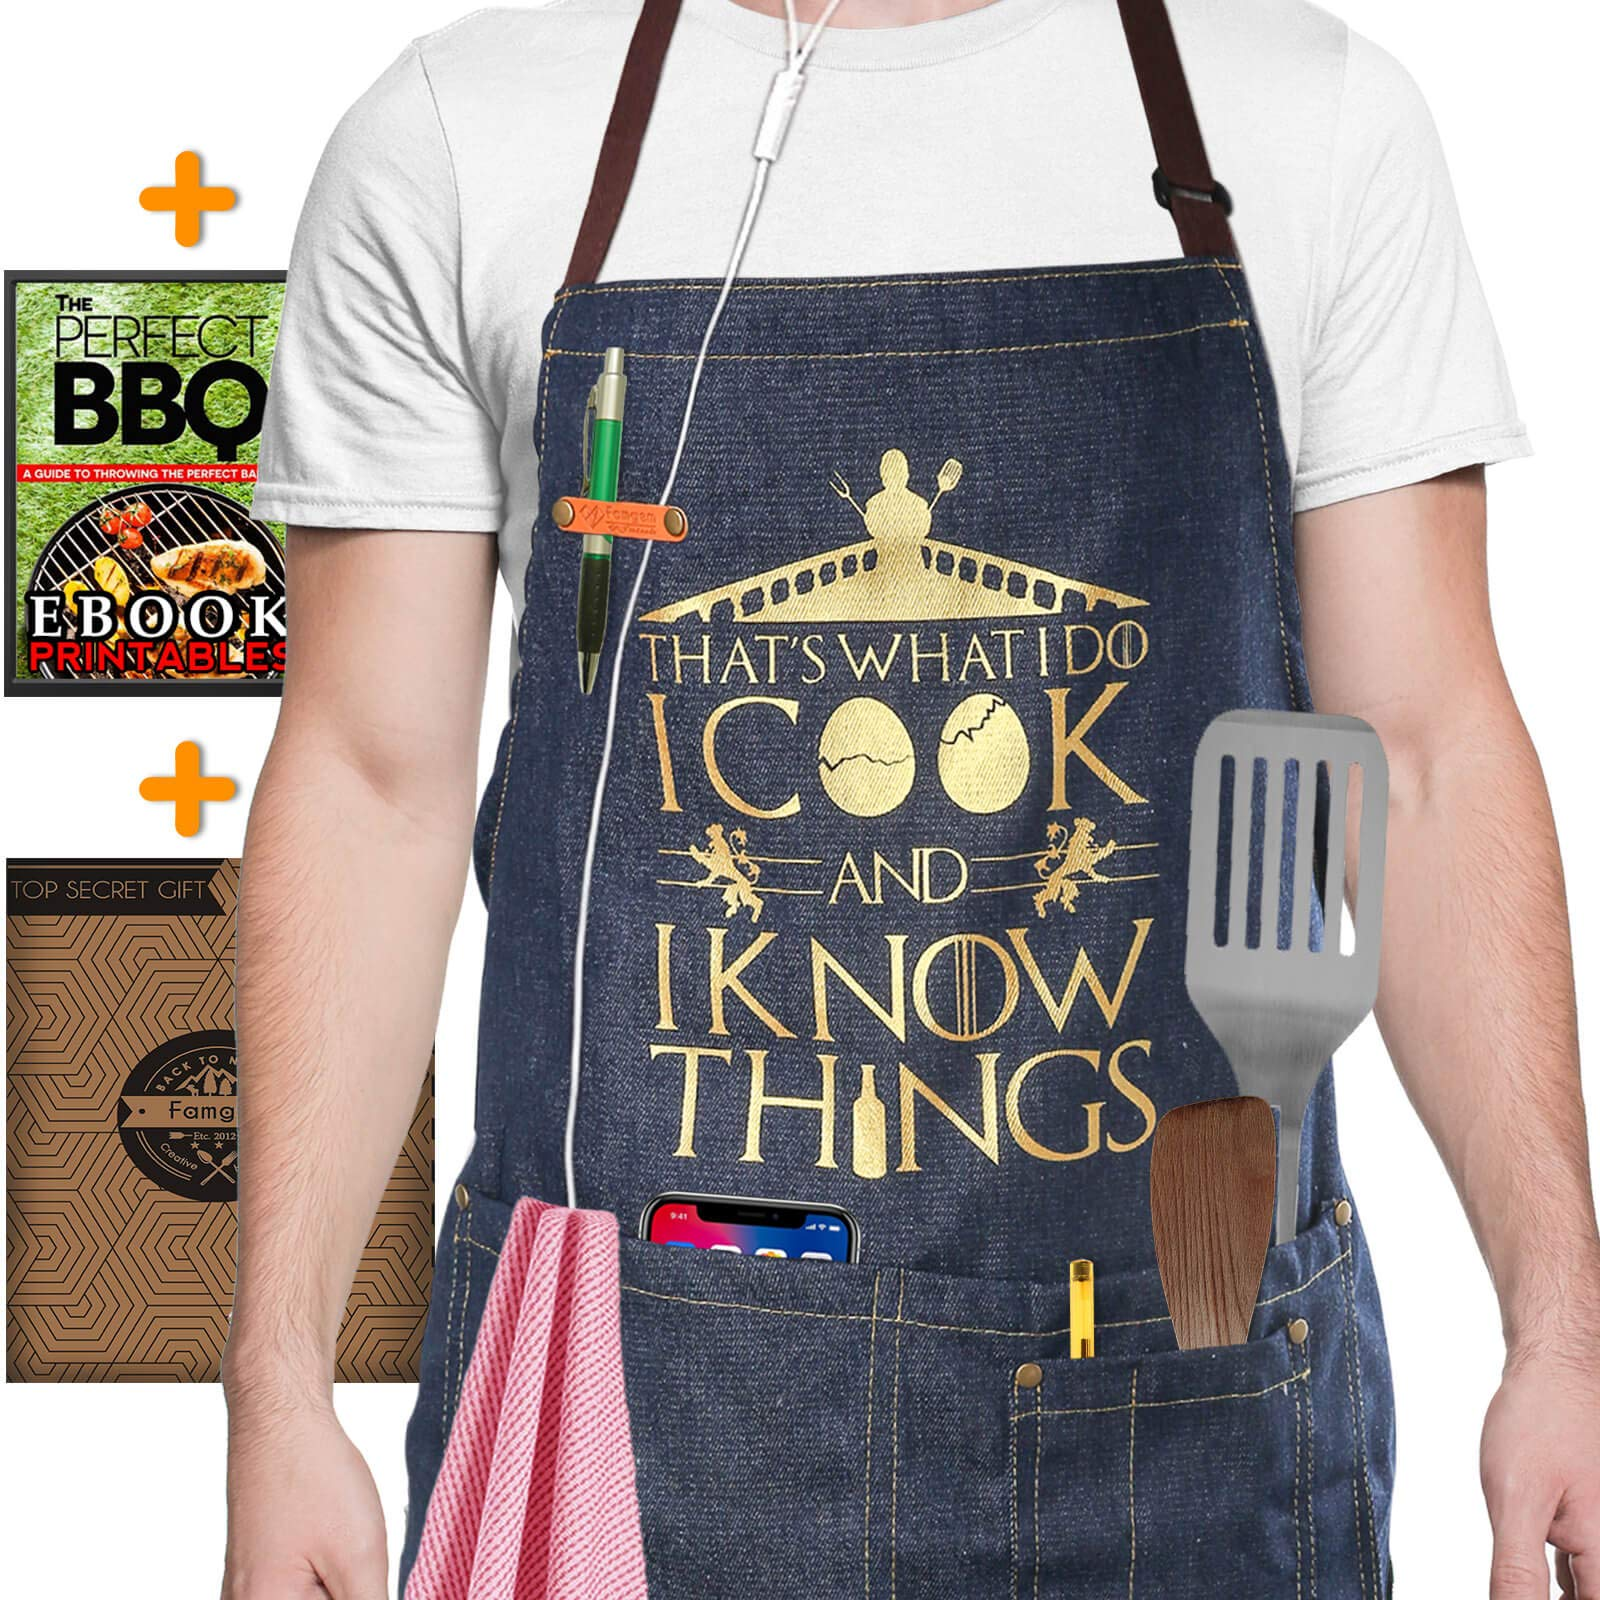 Kitchen Denim Aprons for Men - I Cook and I Know Things Women Funny for Grill, Cooking / 100% Cotton with 4 Pockets - Inspired by Game of Thrones